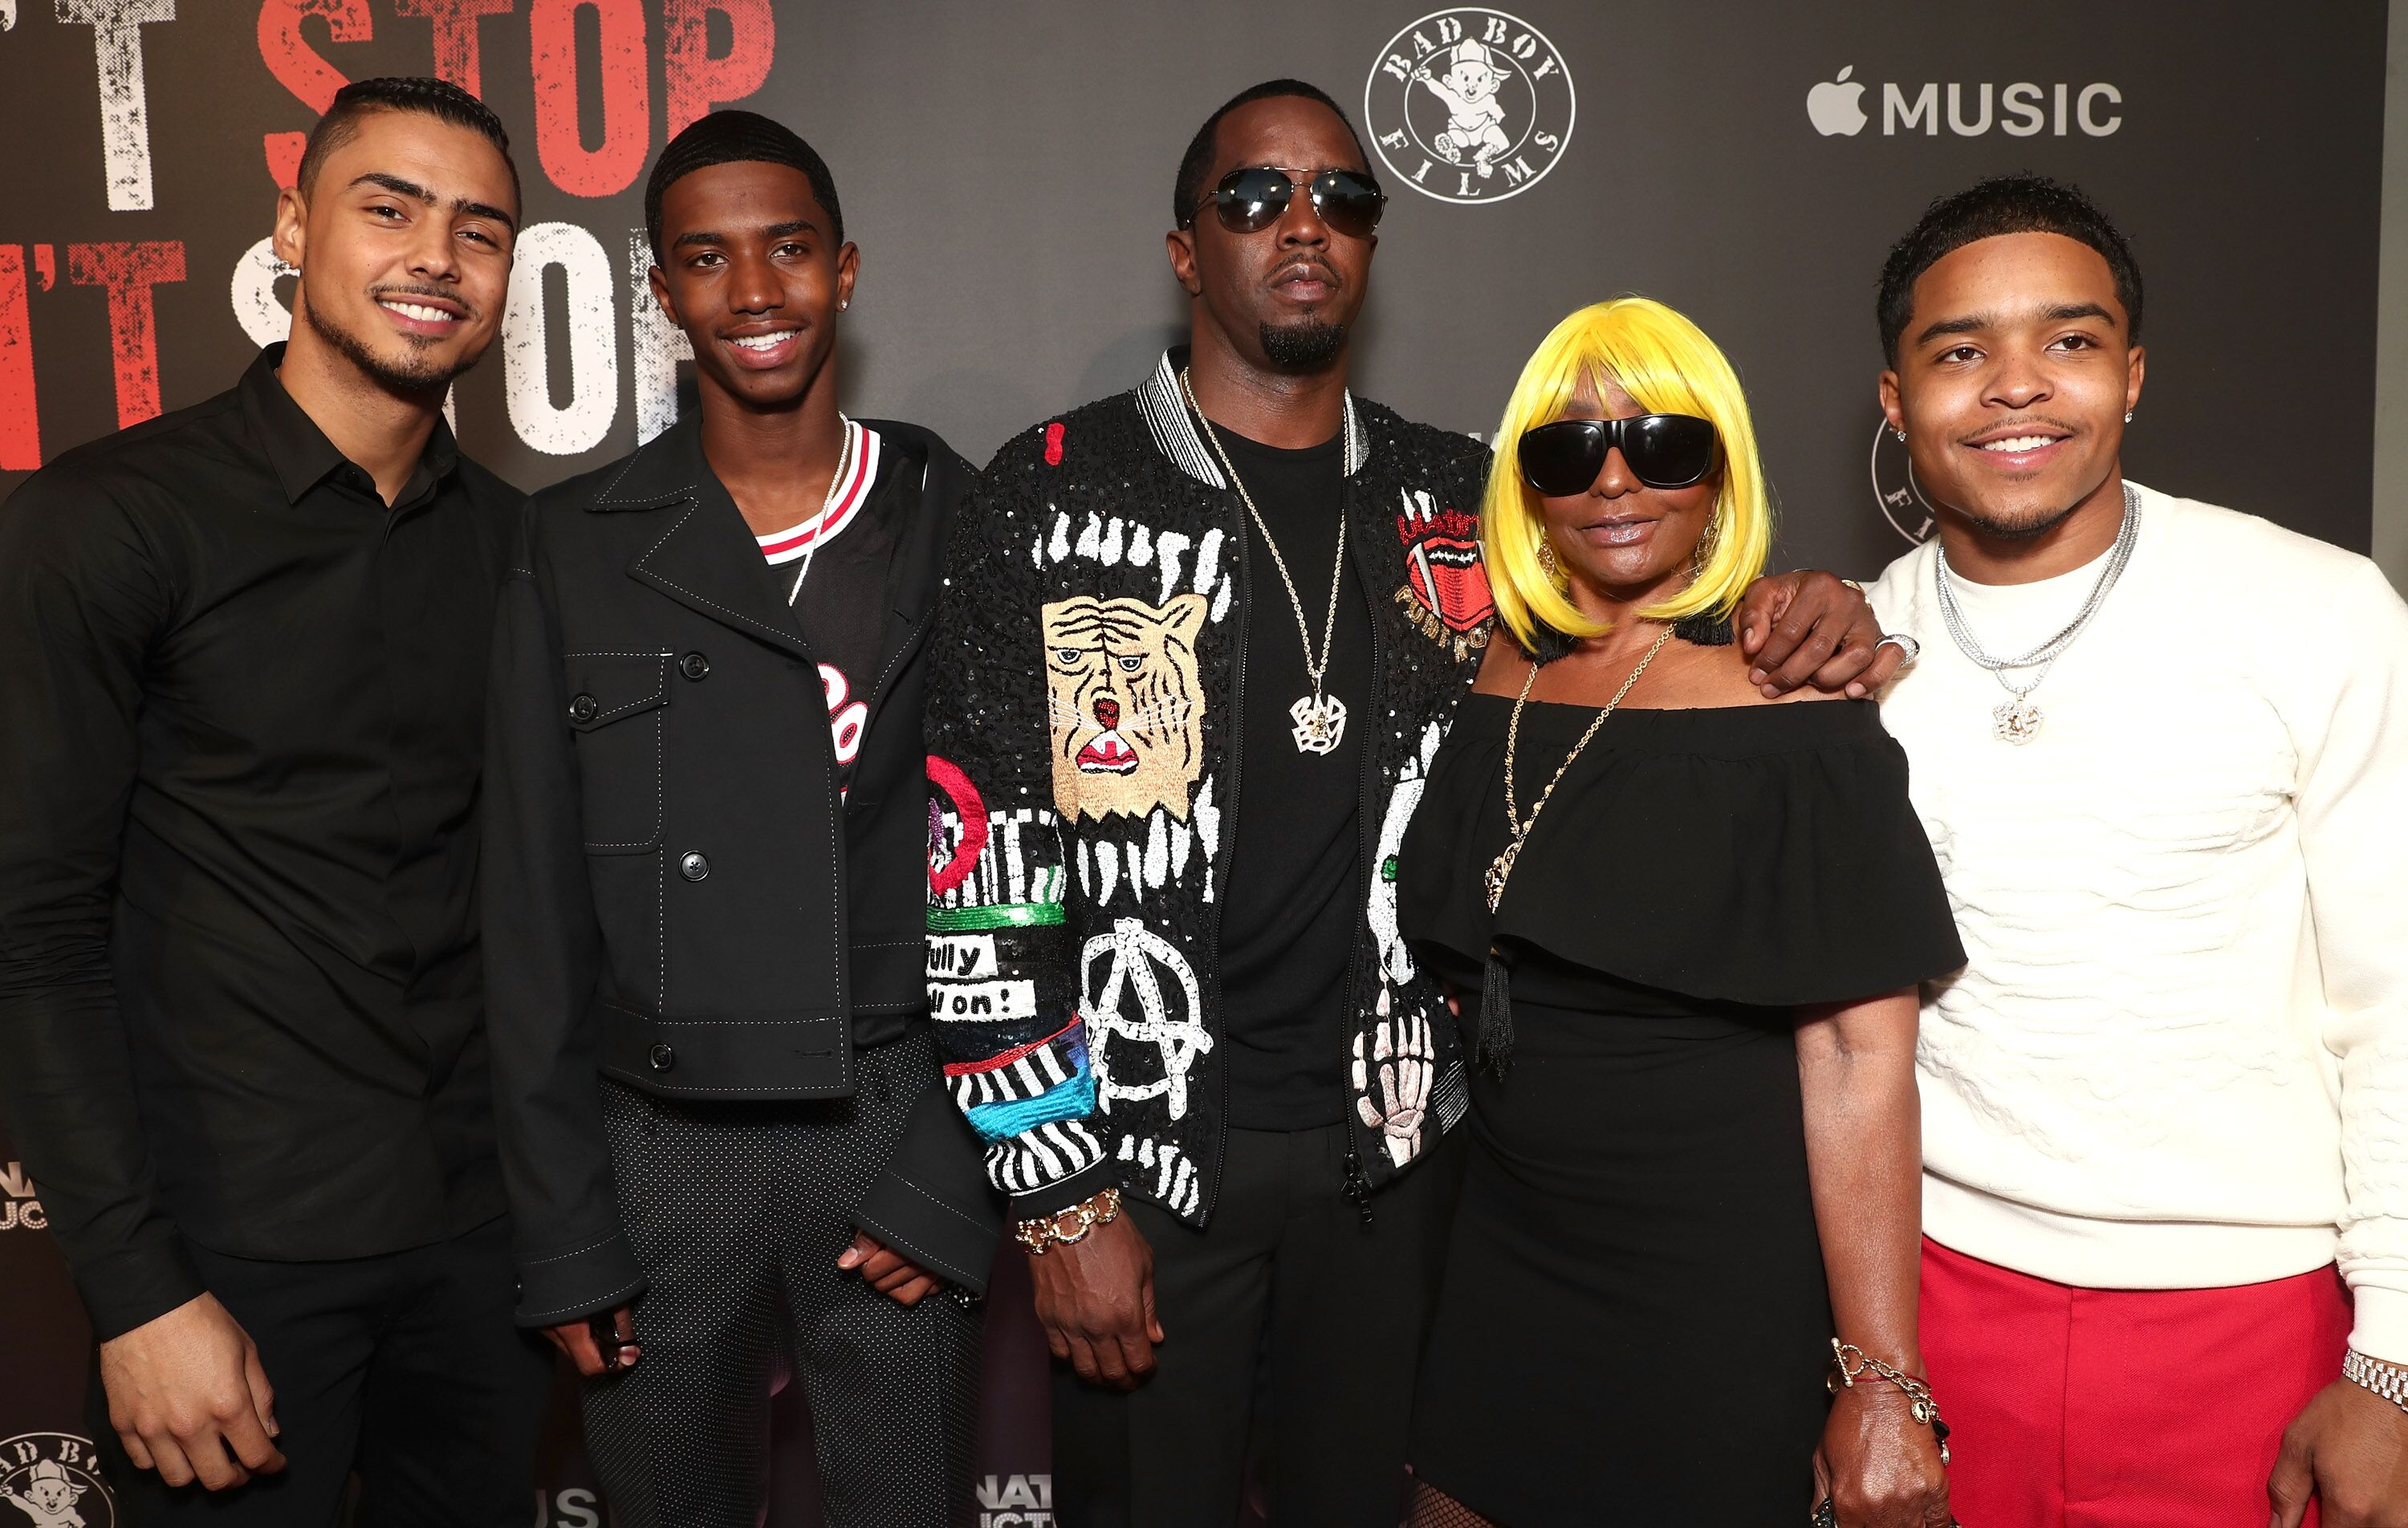 Diddy and his sons at a music event | Source: Getty Images/GlobaIImagesUkraine